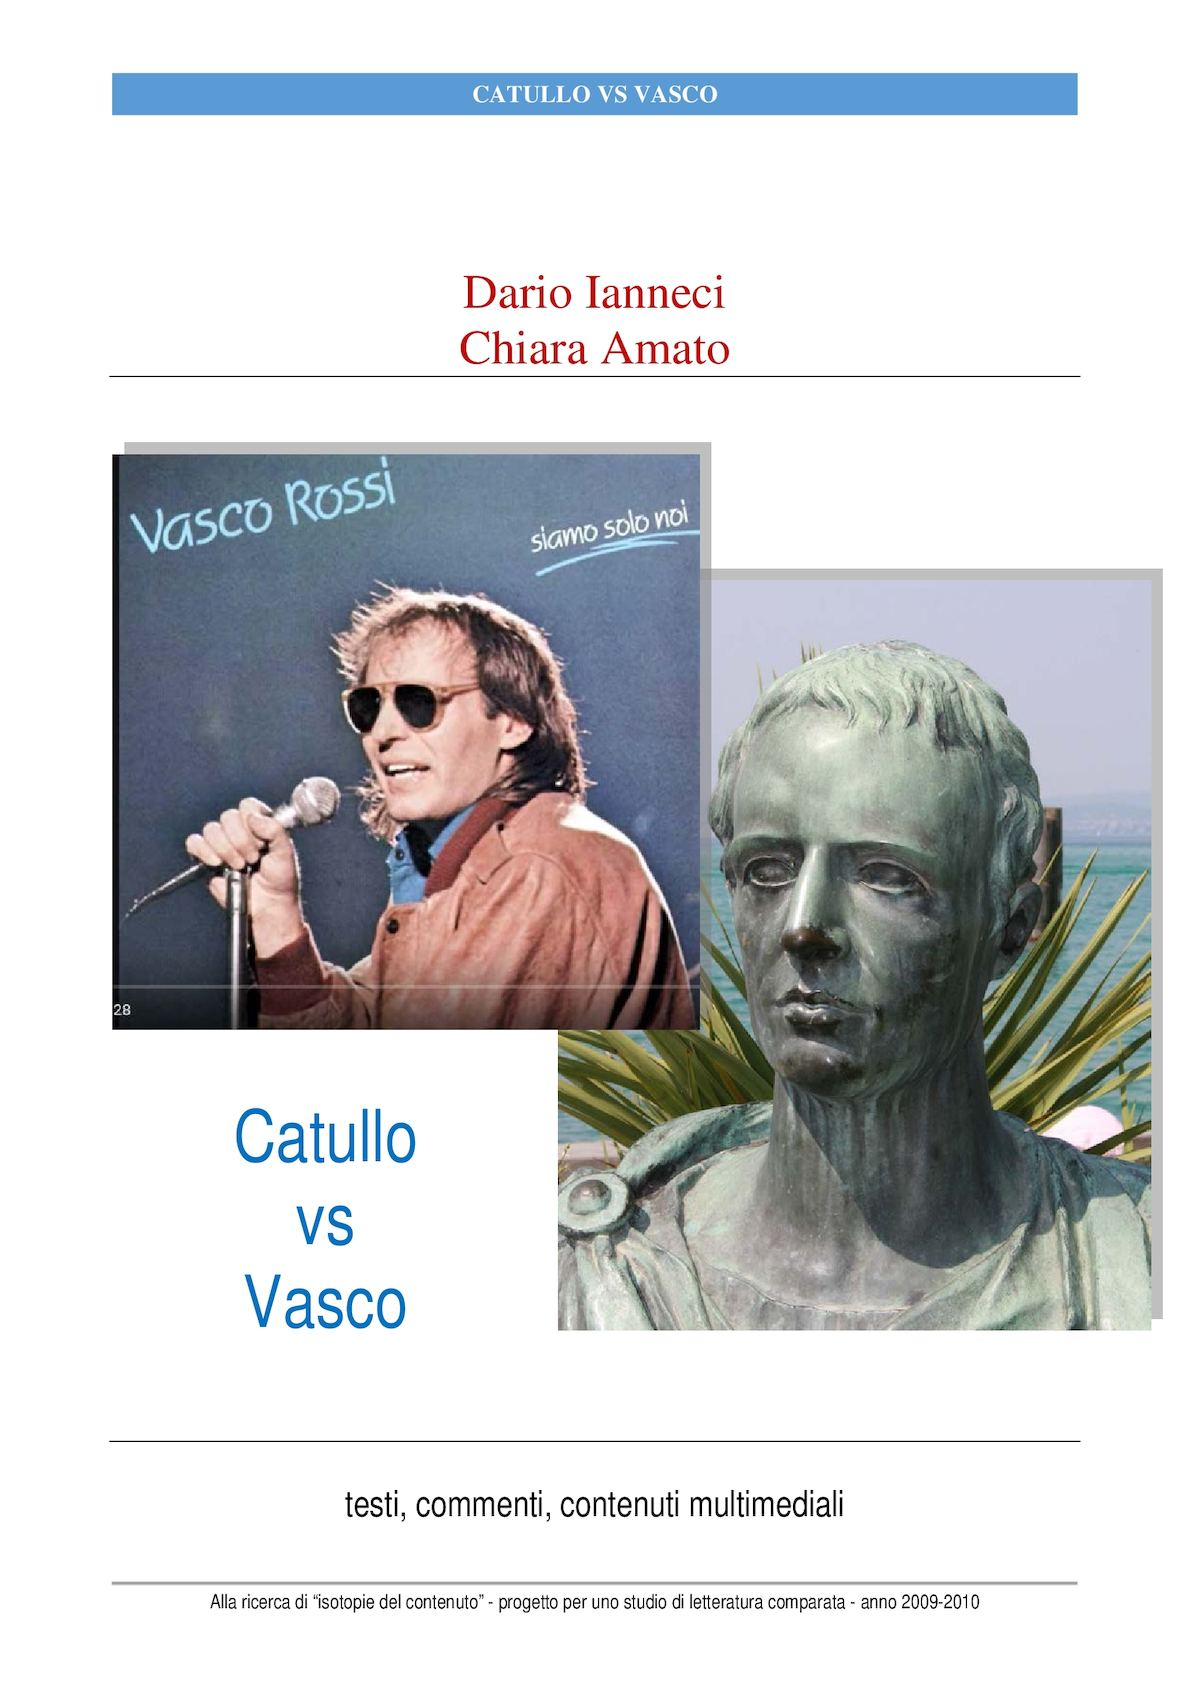 Credi Che Sia Facile Vasco Calaméo Catullo Vs Vasco